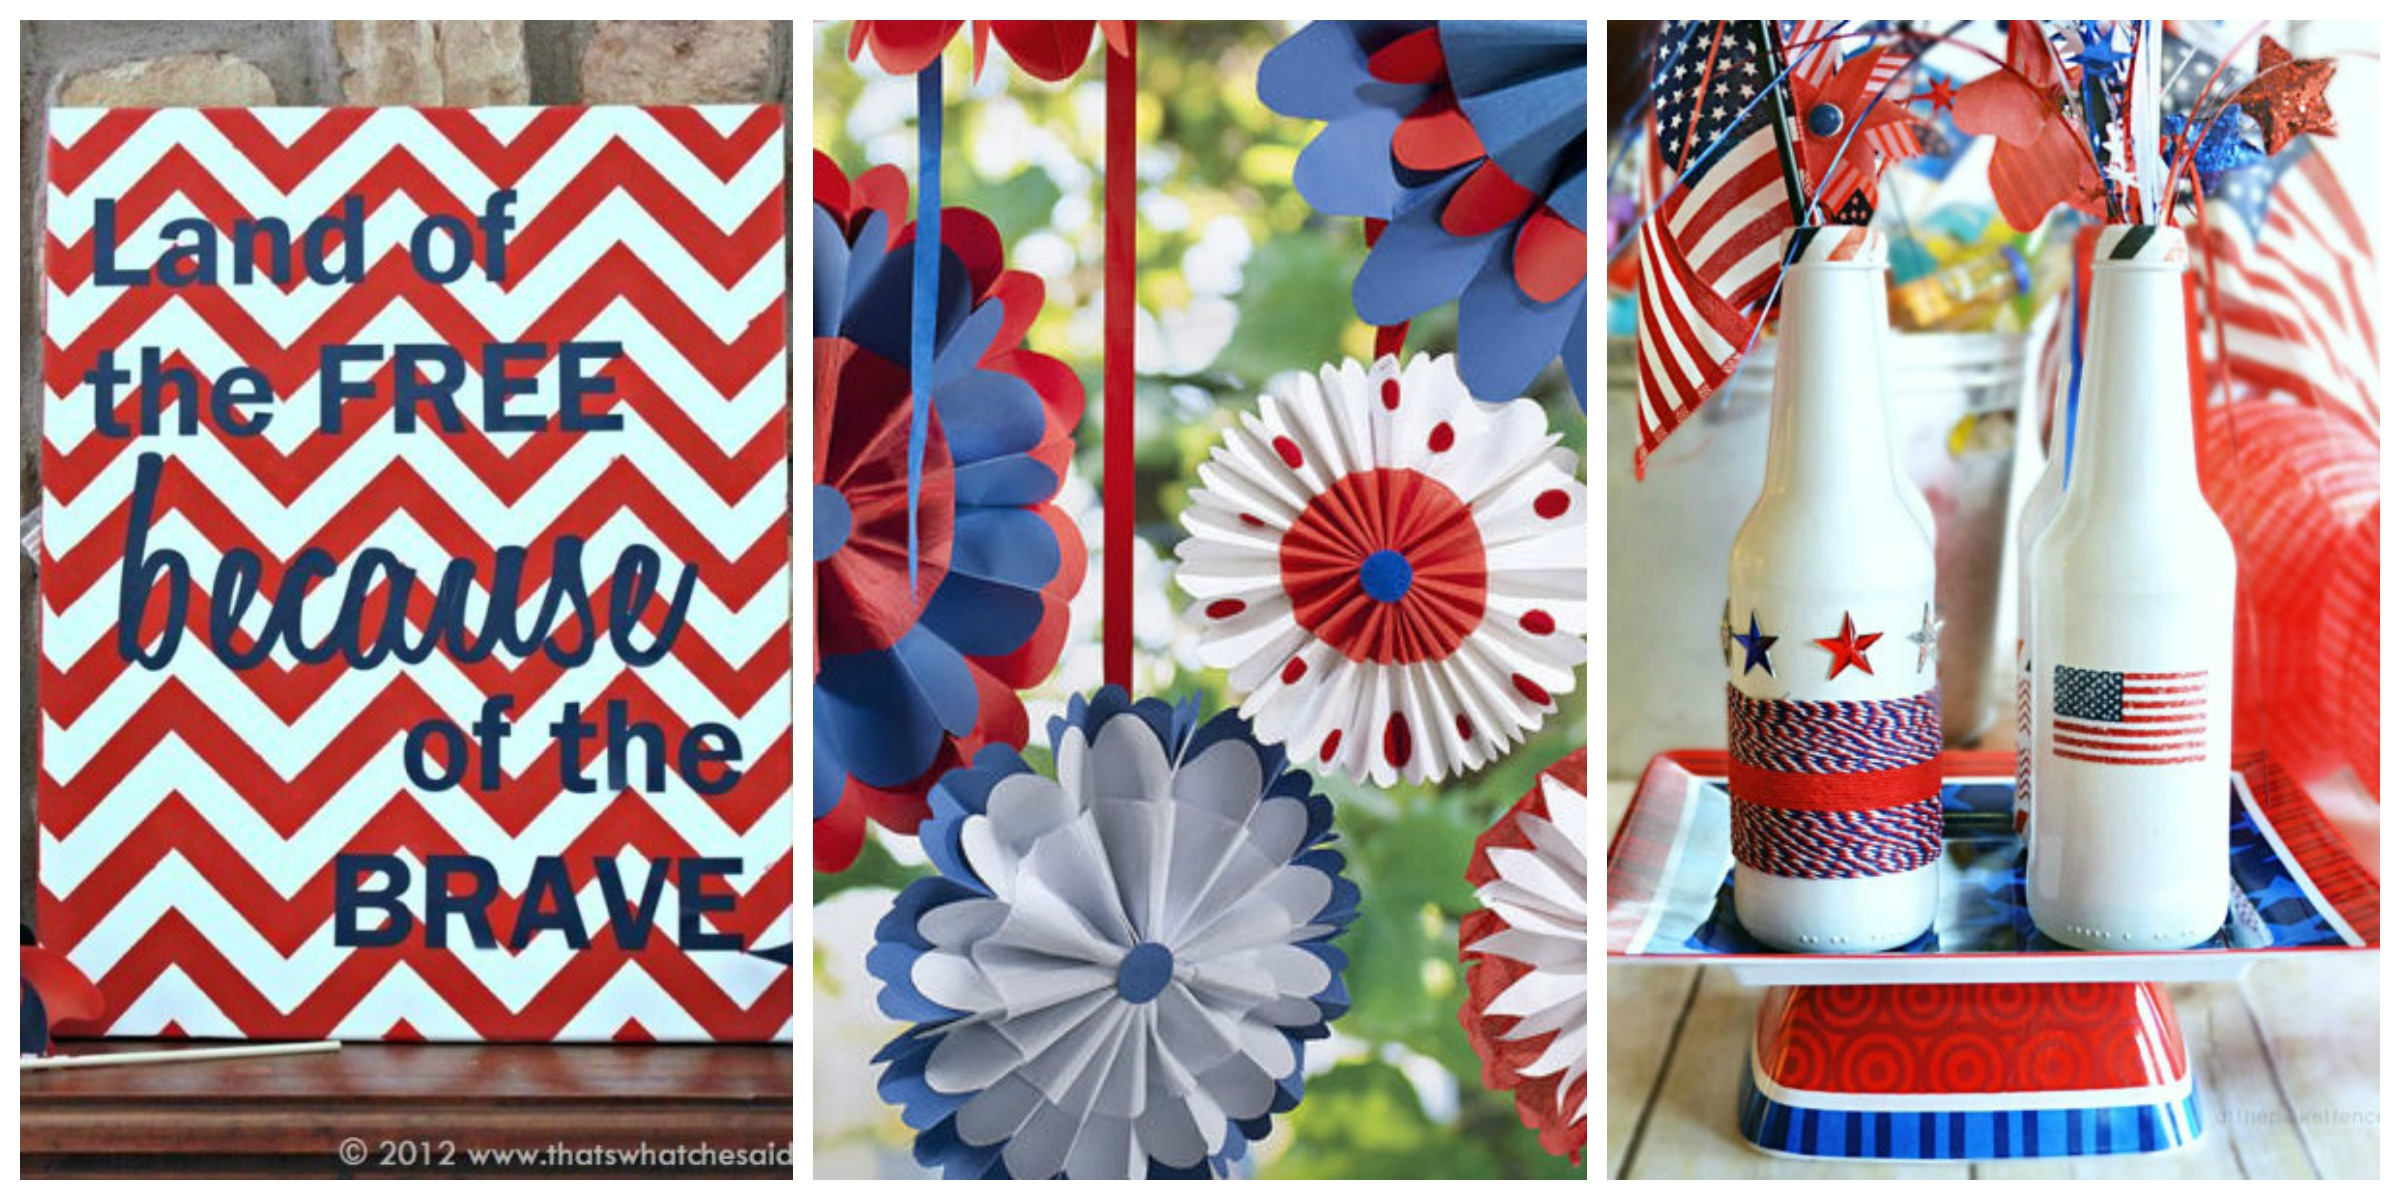 26 easy 4th of july crafts patriotic craft ideas diy for 4th of july decorating ideas for outside